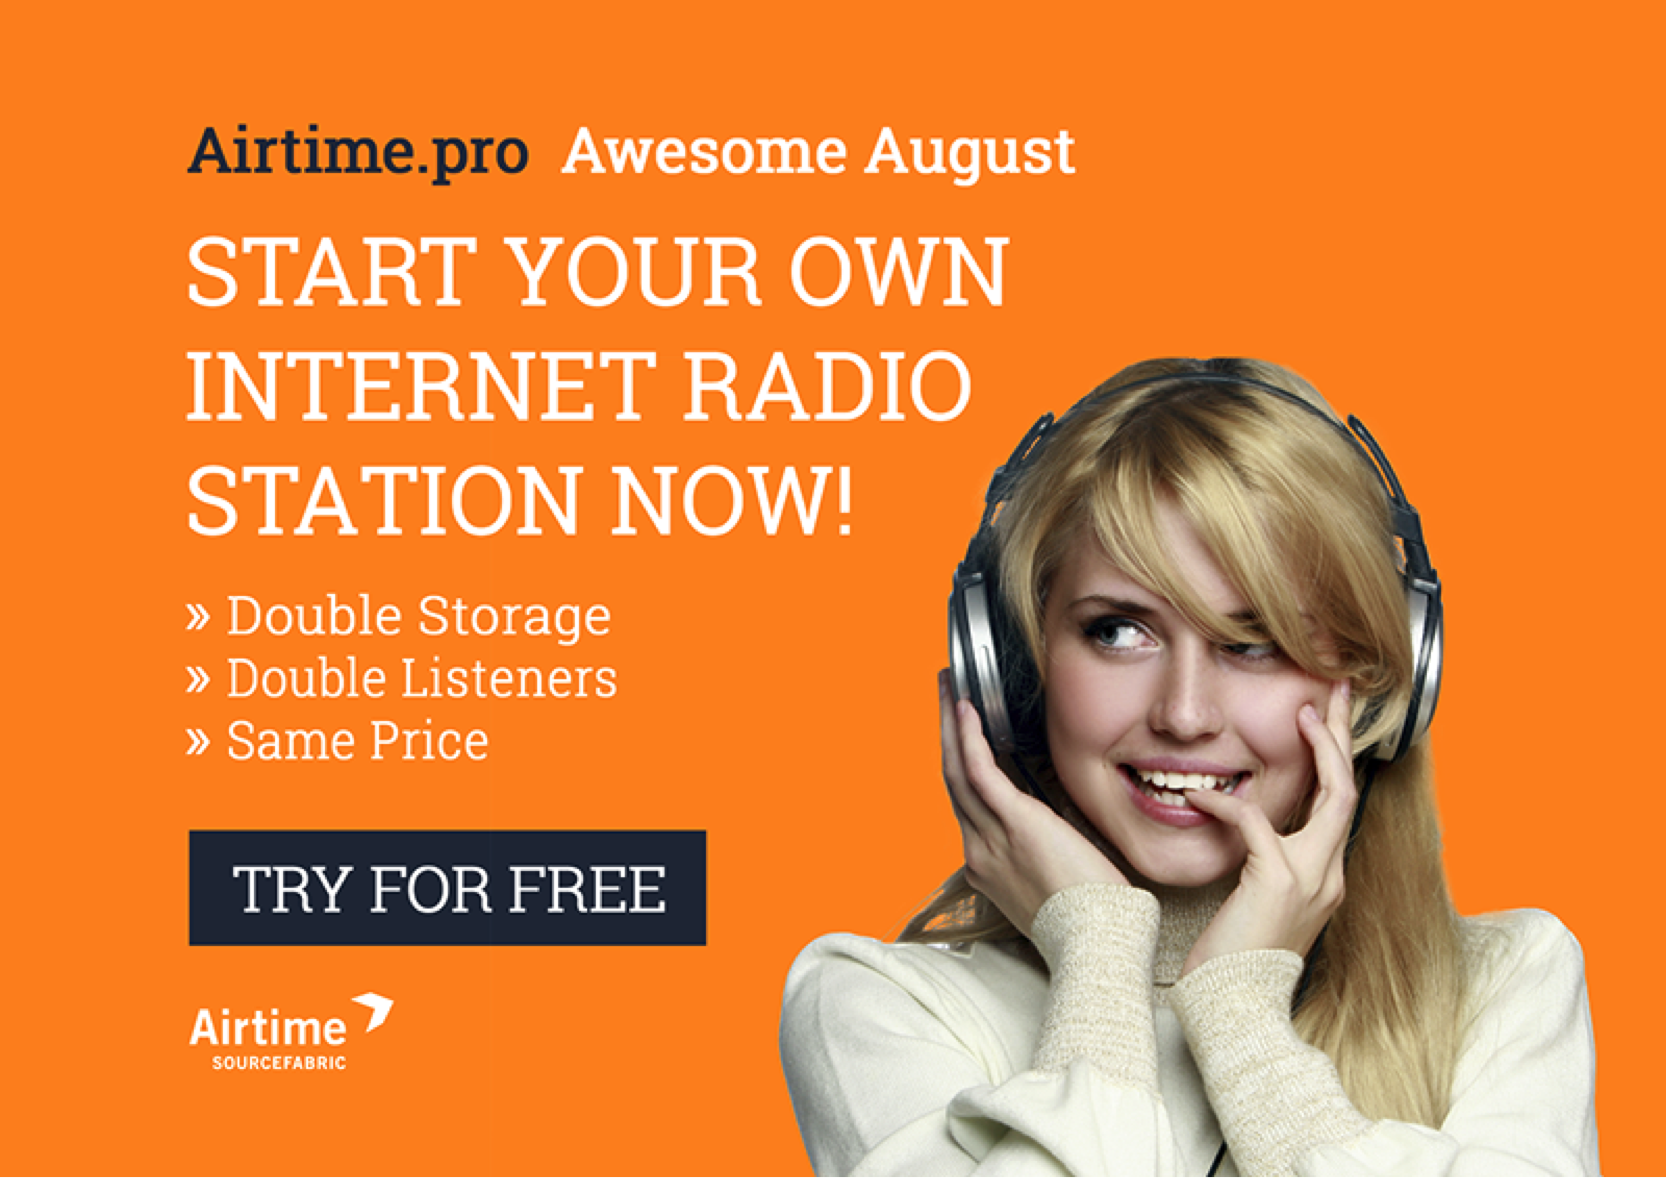 Start Your Own Internet Radio Station with Airtime Pro